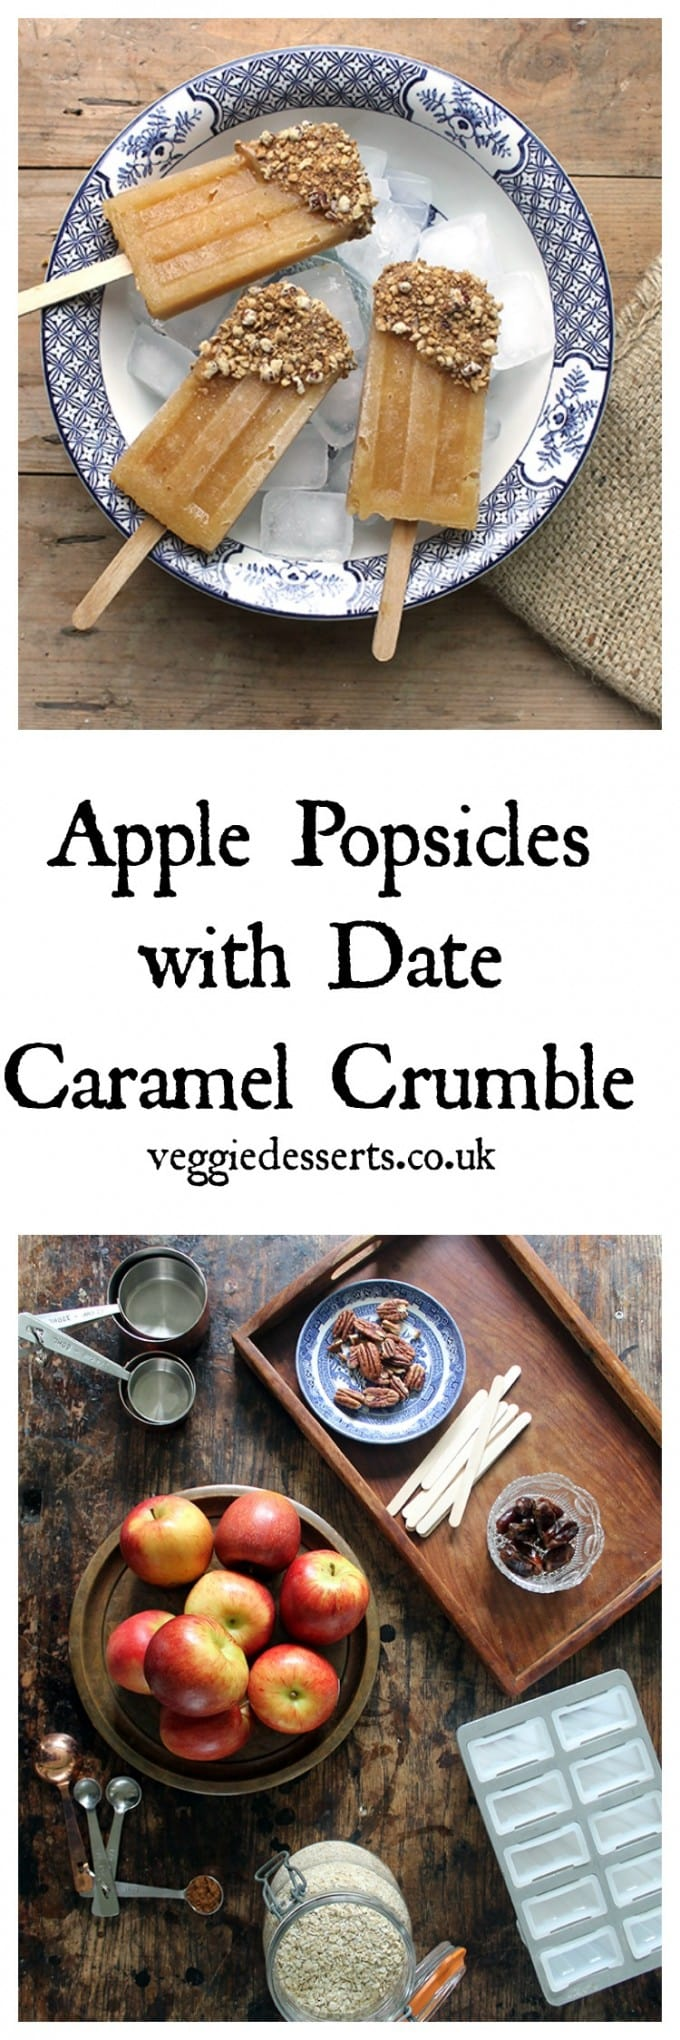 Apple popsicles are a delicious frozen dessert and a great way to use up apples. I've added a date caramel and crumble/crisp topping to make these easy vegan ice lollies extra special. #applerecipe #popsicles #applecrisp #applecrumble #vegan #sugarfree #datecaramel #dates #recipe